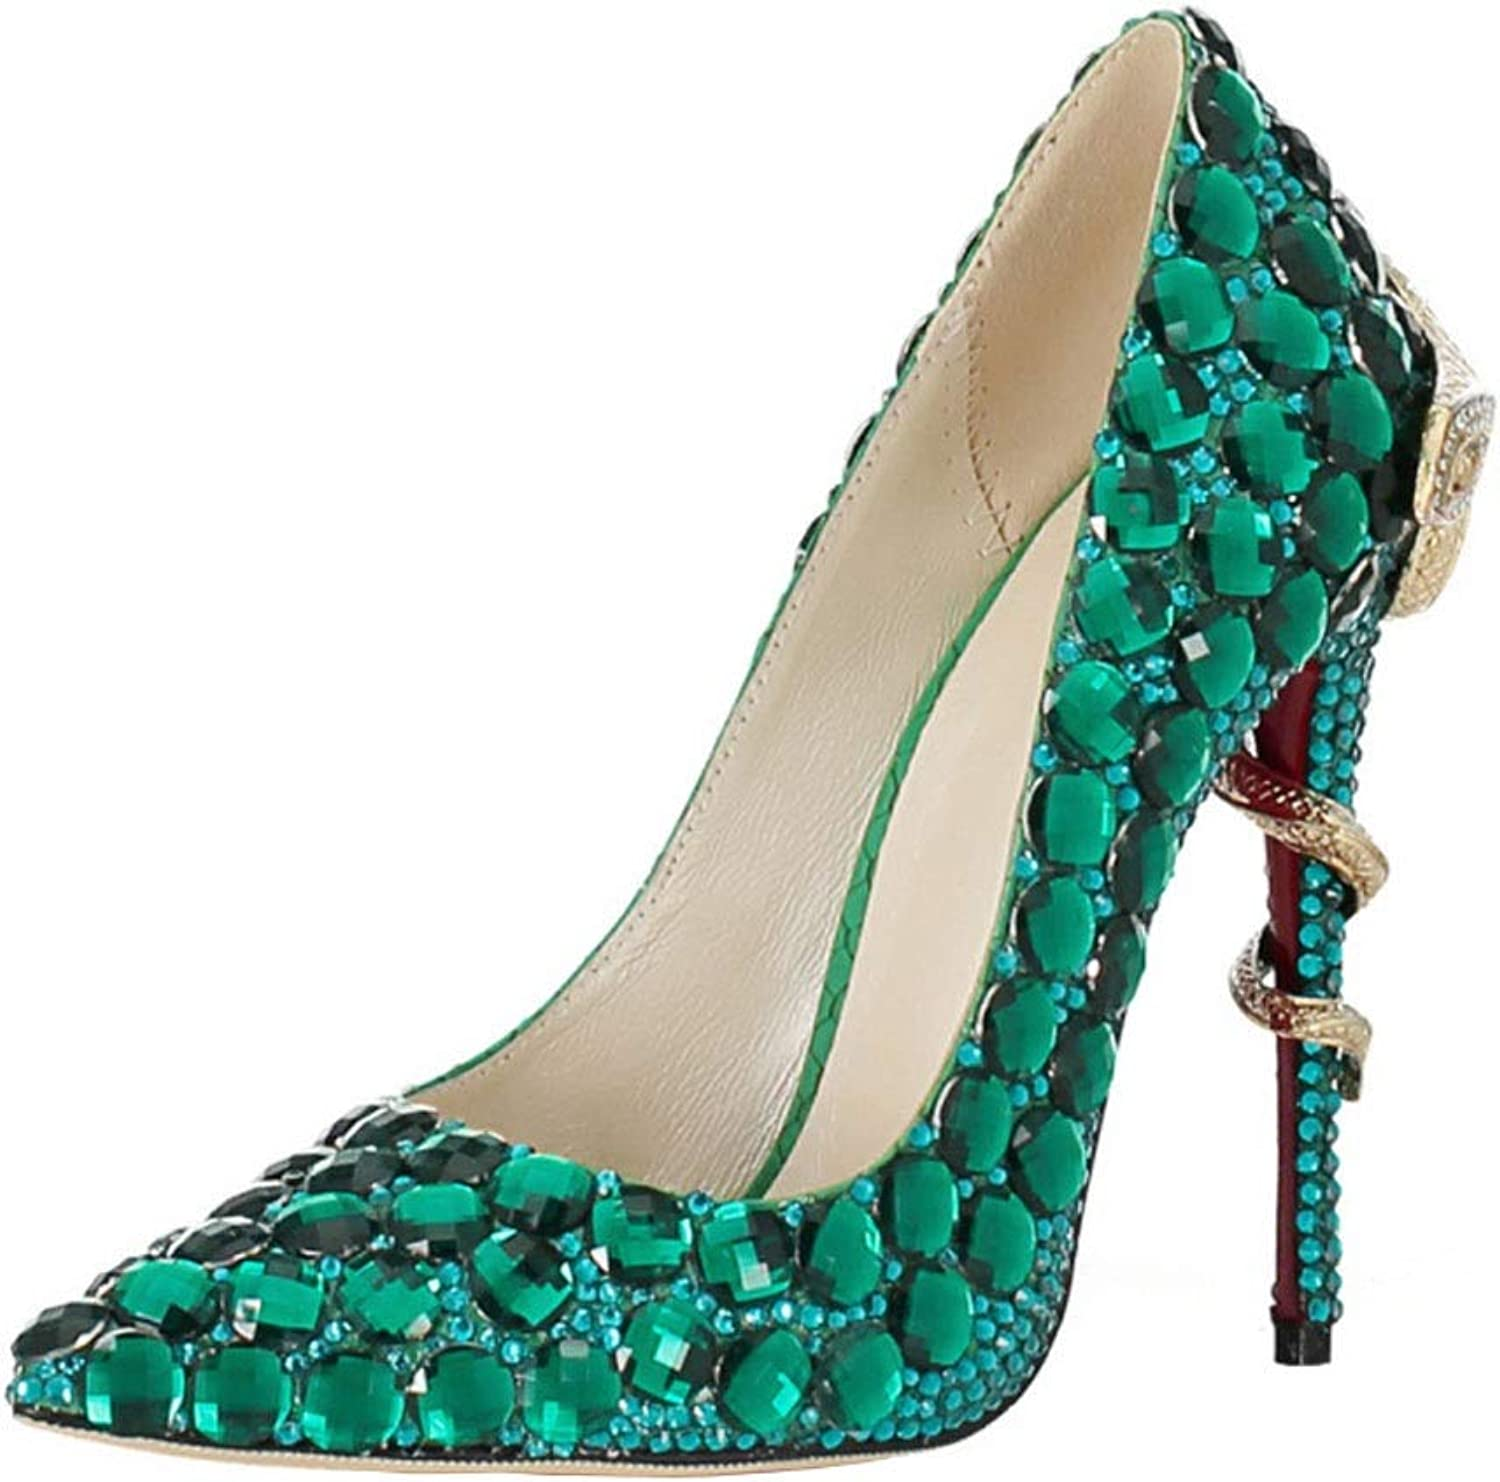 FLYSXP Women's Single shoes Rhinestone Platform High Heels Shallow Mouth Pointed Sandals Wedding Prom Pump Women's shoes (Size   8.5 US)